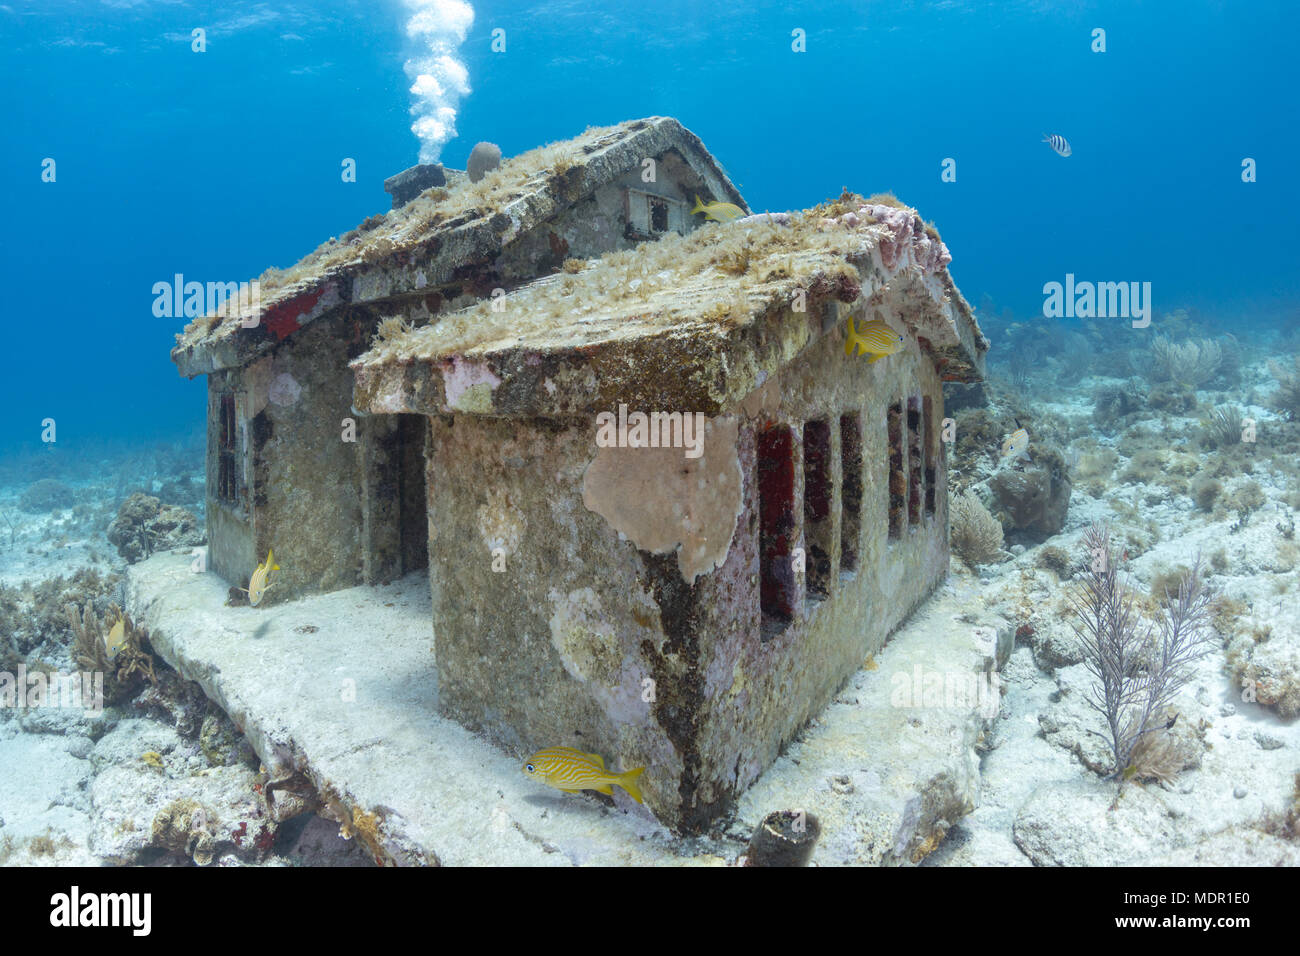 Image result for underwater house